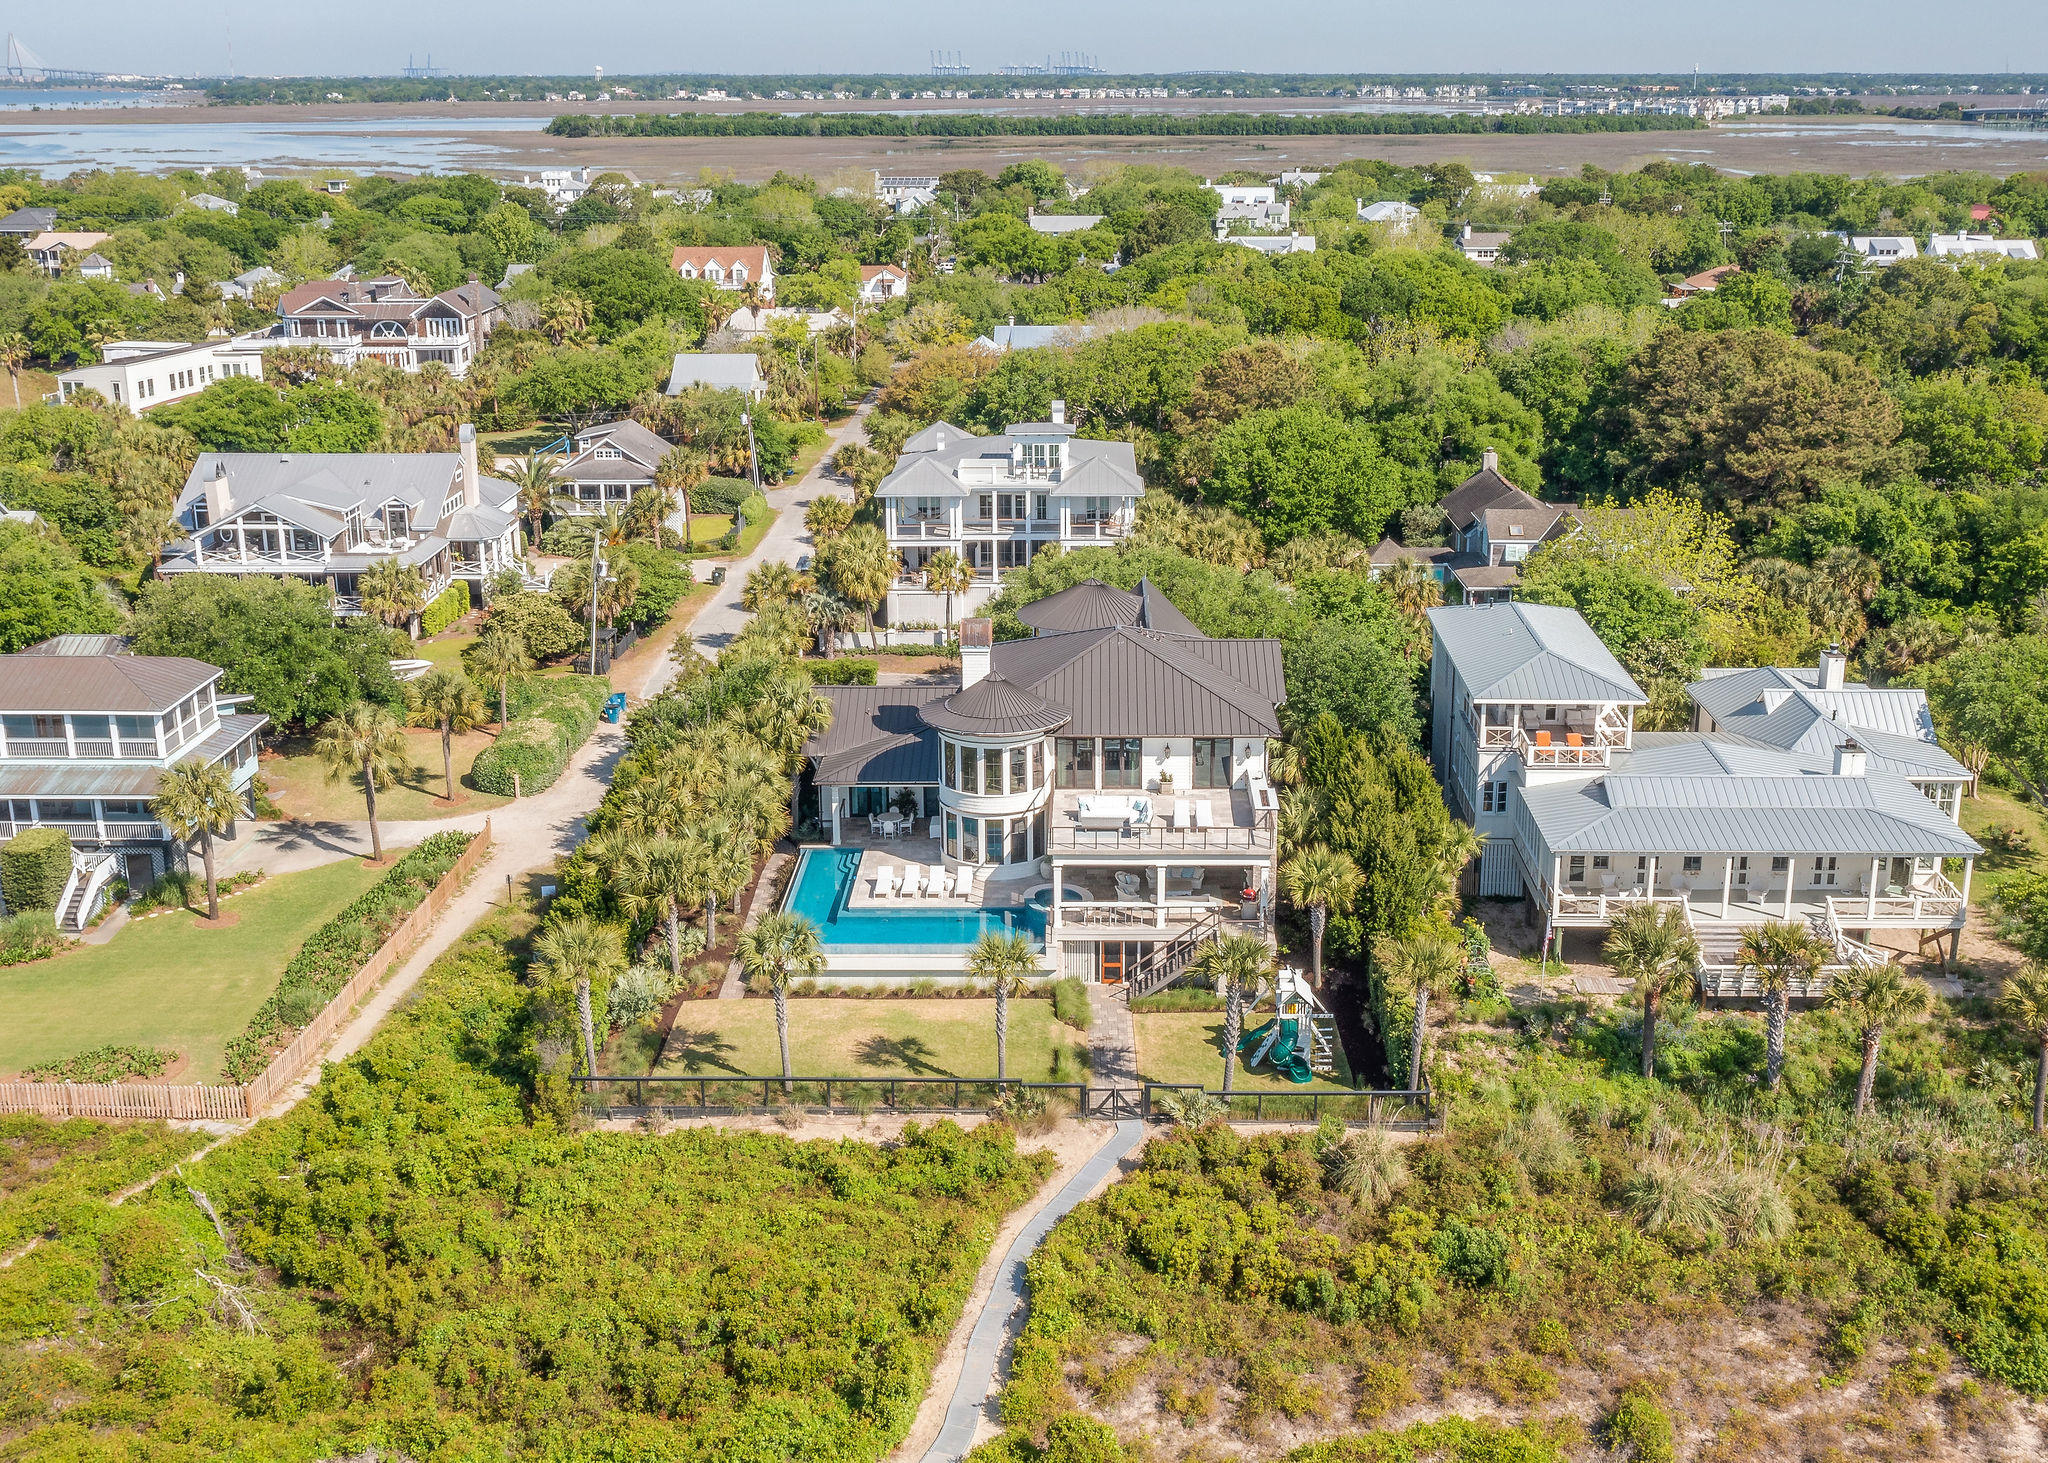 Sullivans Island Homes For Sale - 1901 Thee, Sullivans Island, SC - 23